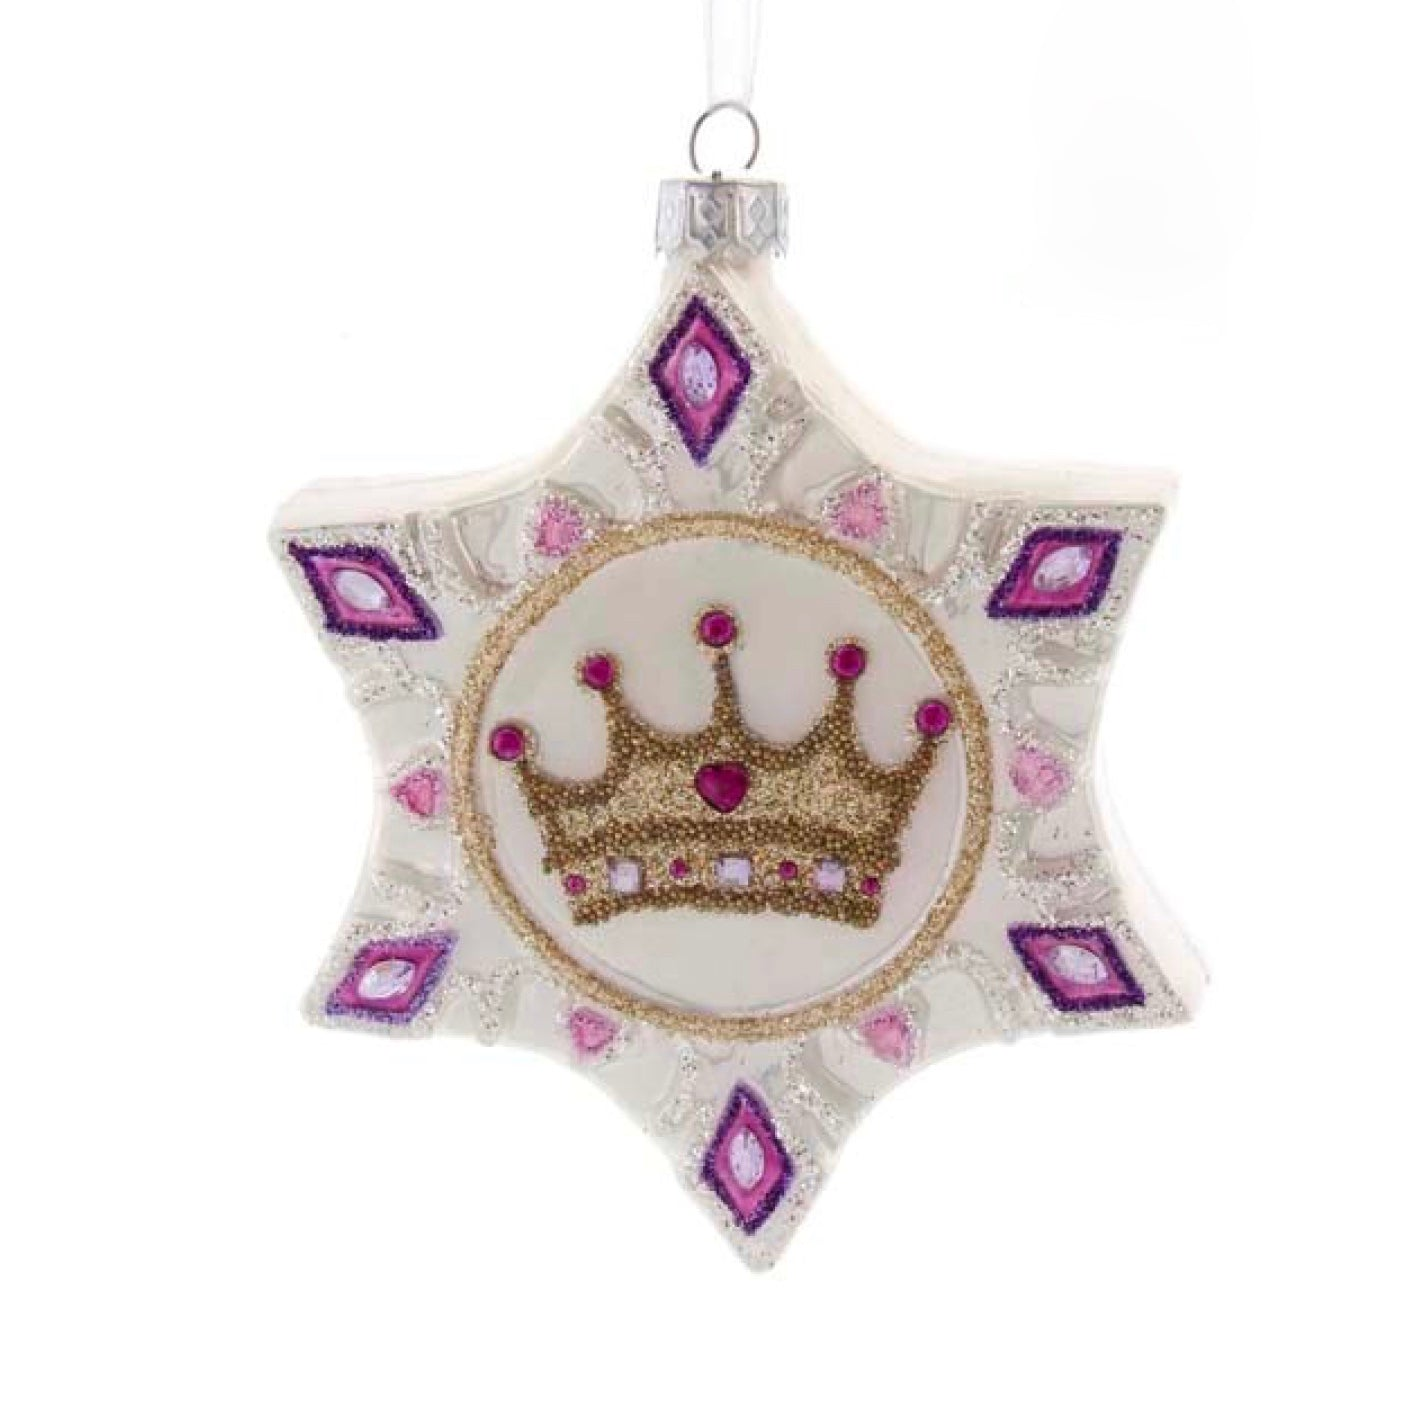 Kurt Adler Royal Splendor Snowflake with Crown Glass Ornament